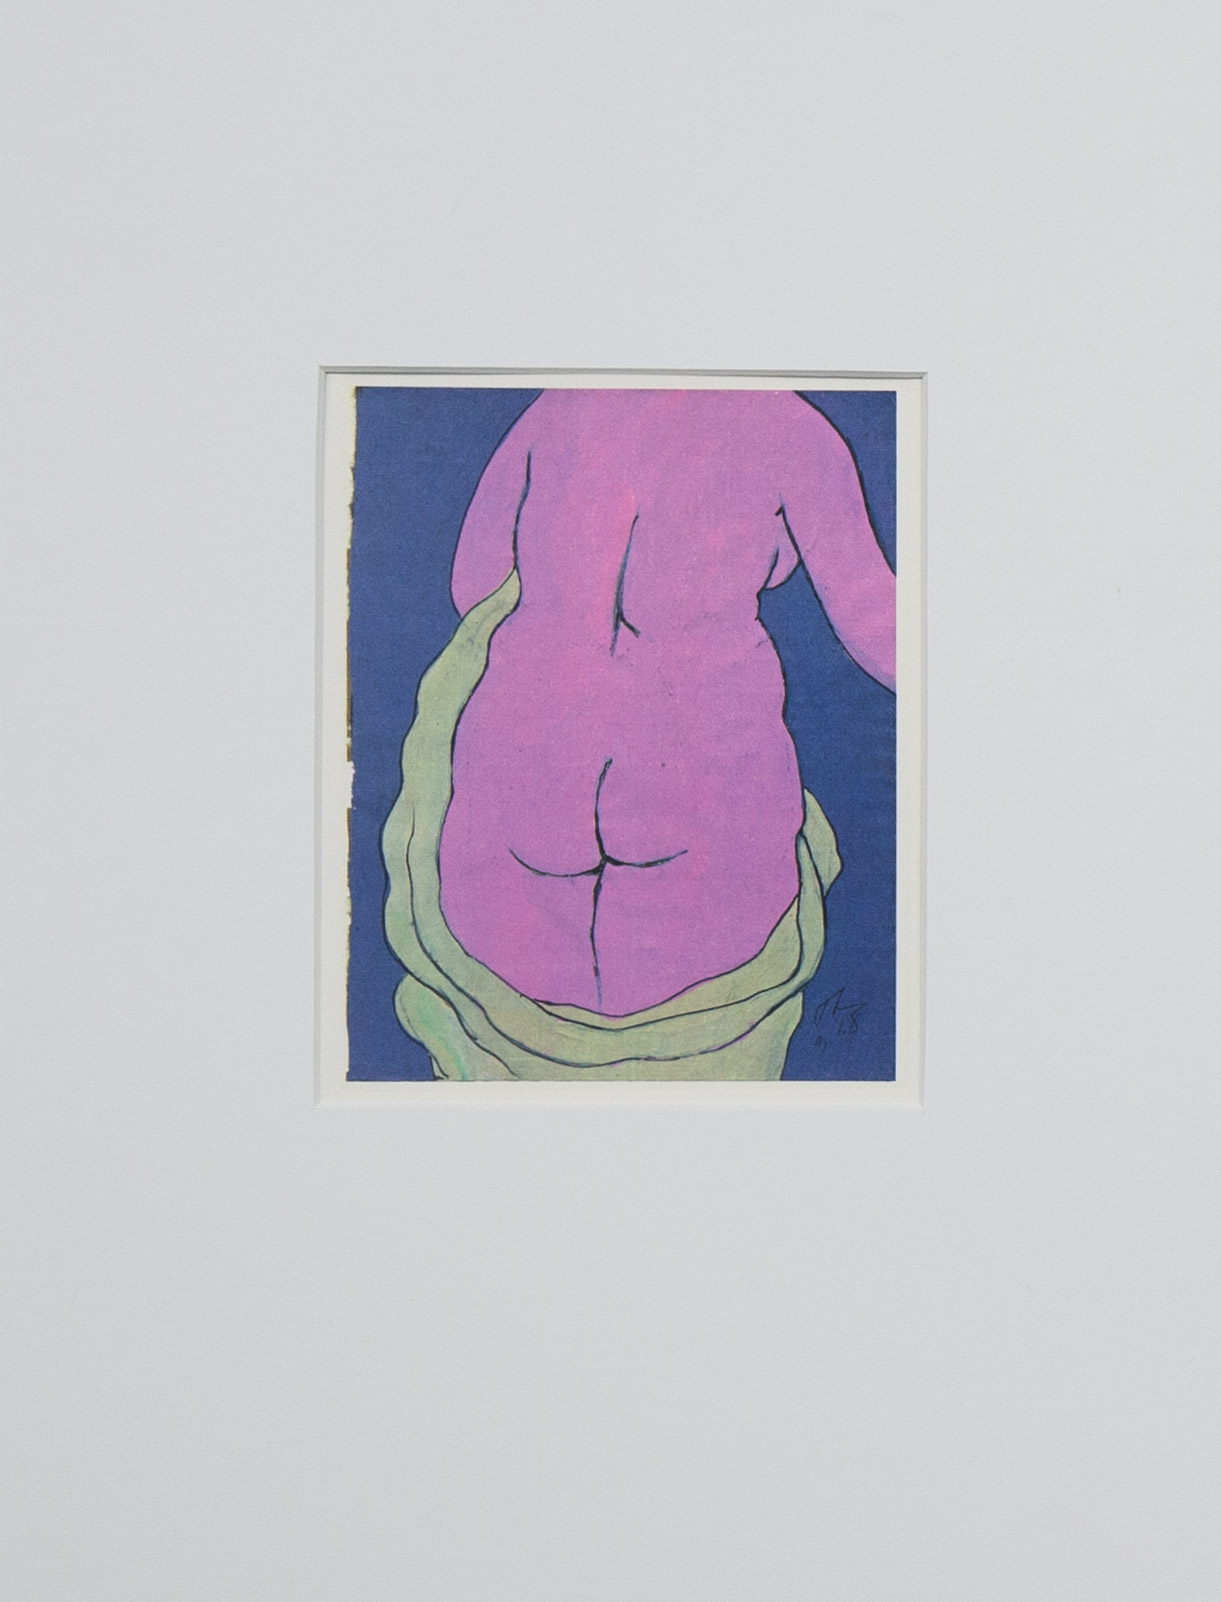 Theodore Titolo,  Myself as a Woman , 1968/1994, transfer print, 16 x 12 in